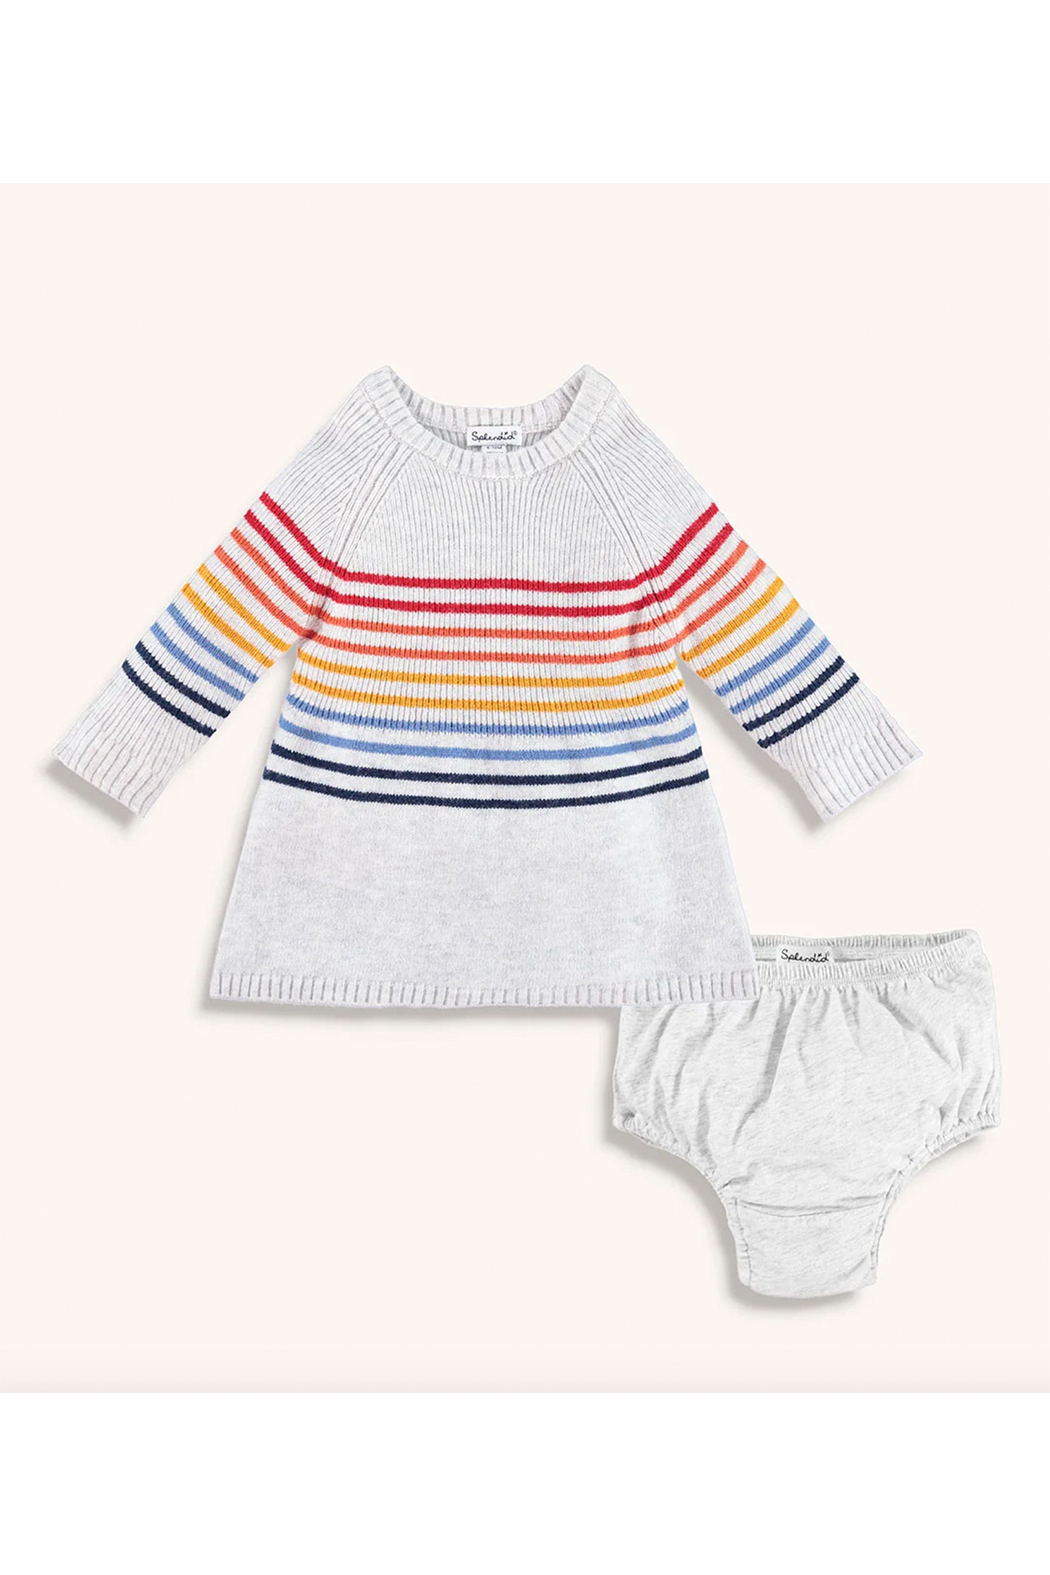 Splendid Baby Girl Rainbow Stripe Sweater Dress Set - Main Image